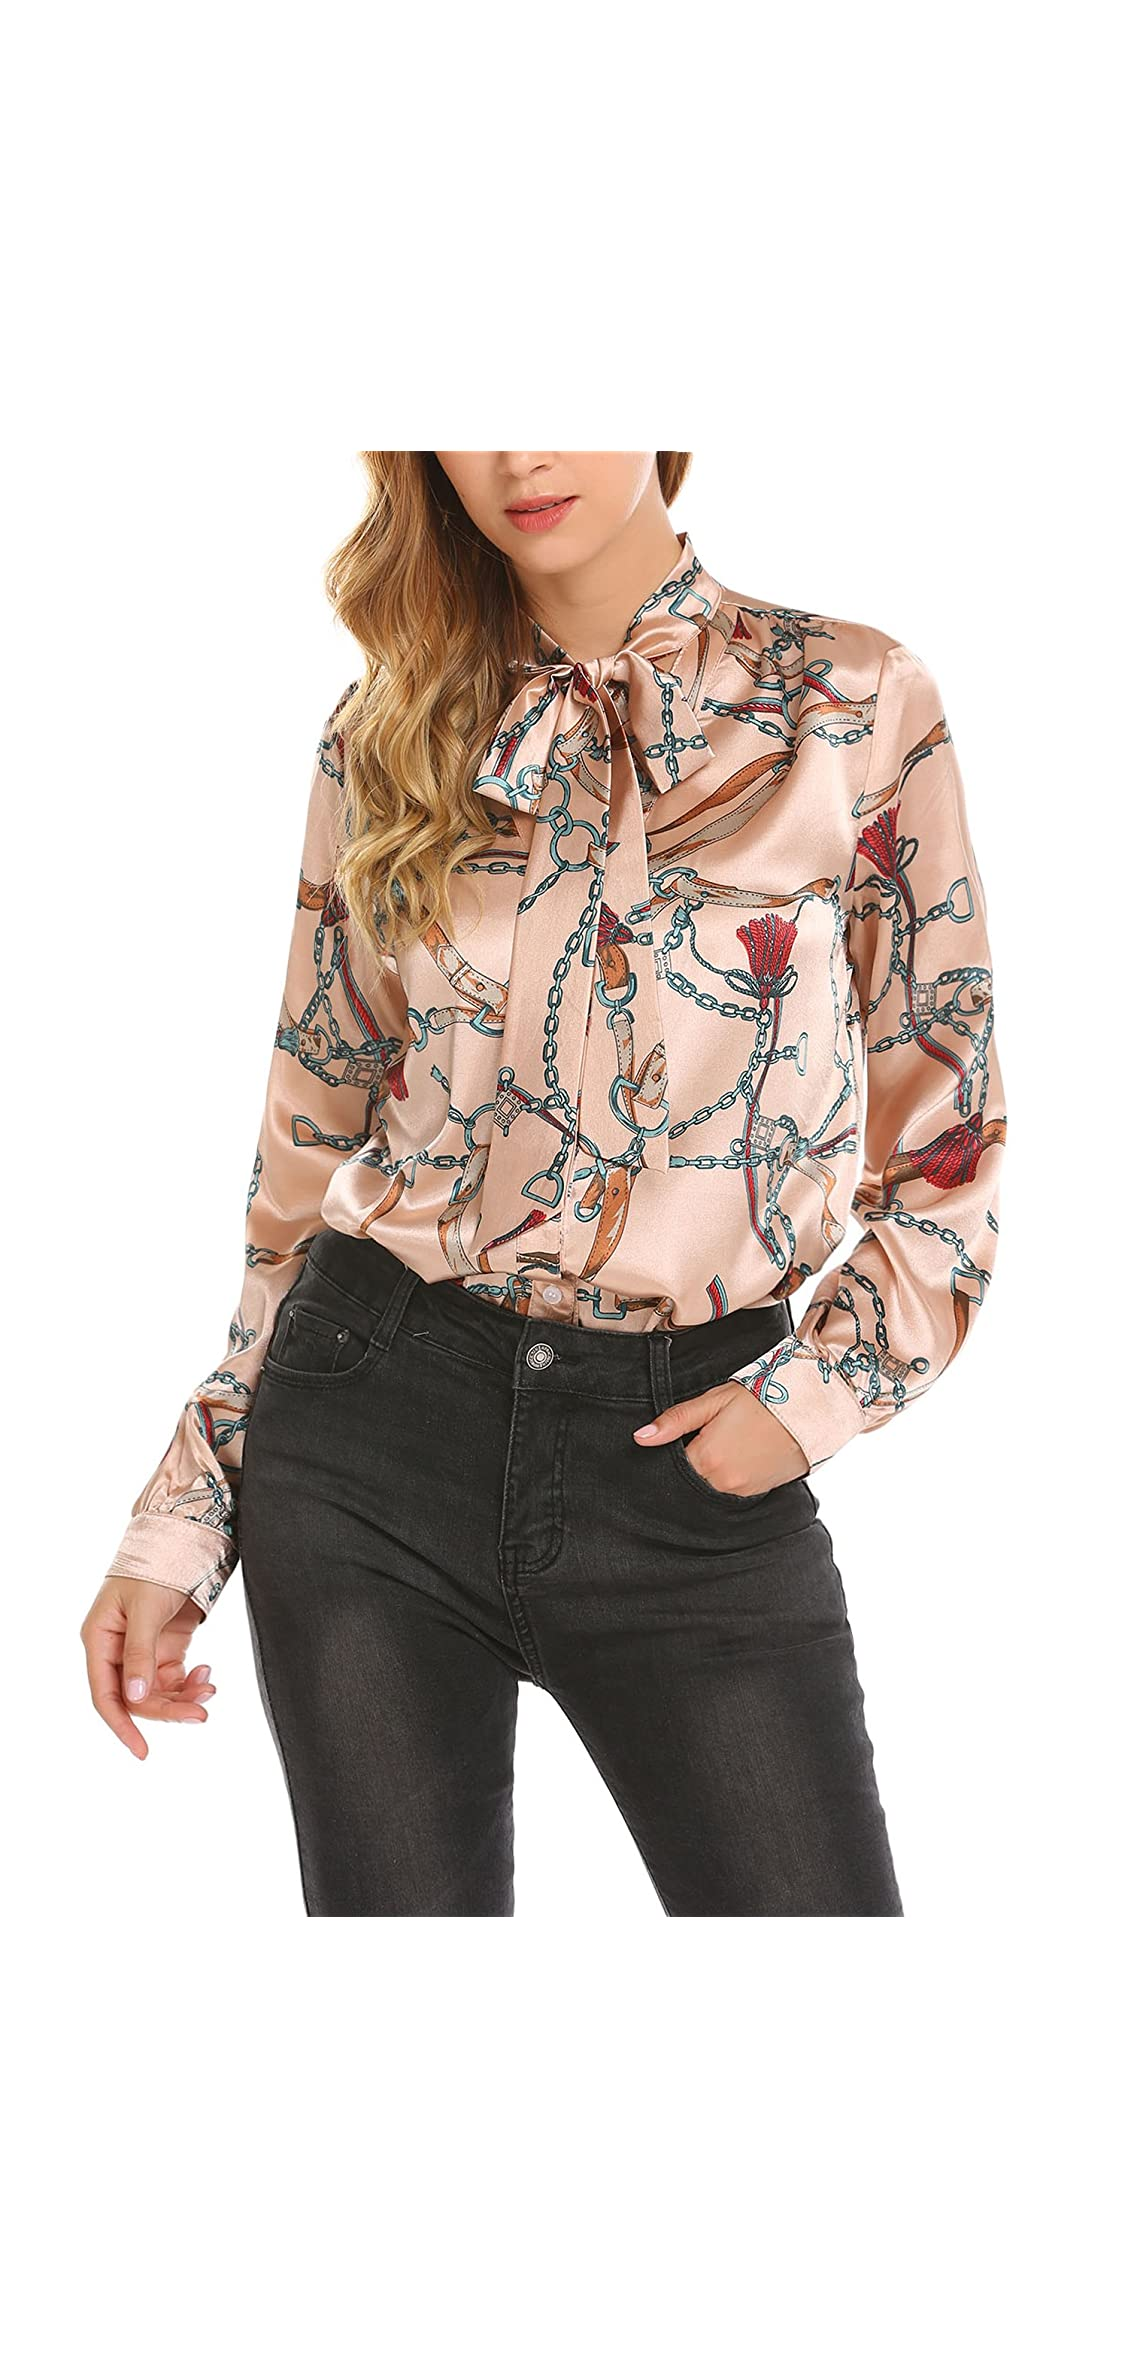 Women's Fashion Collar Long Sleeve Print Casual Button